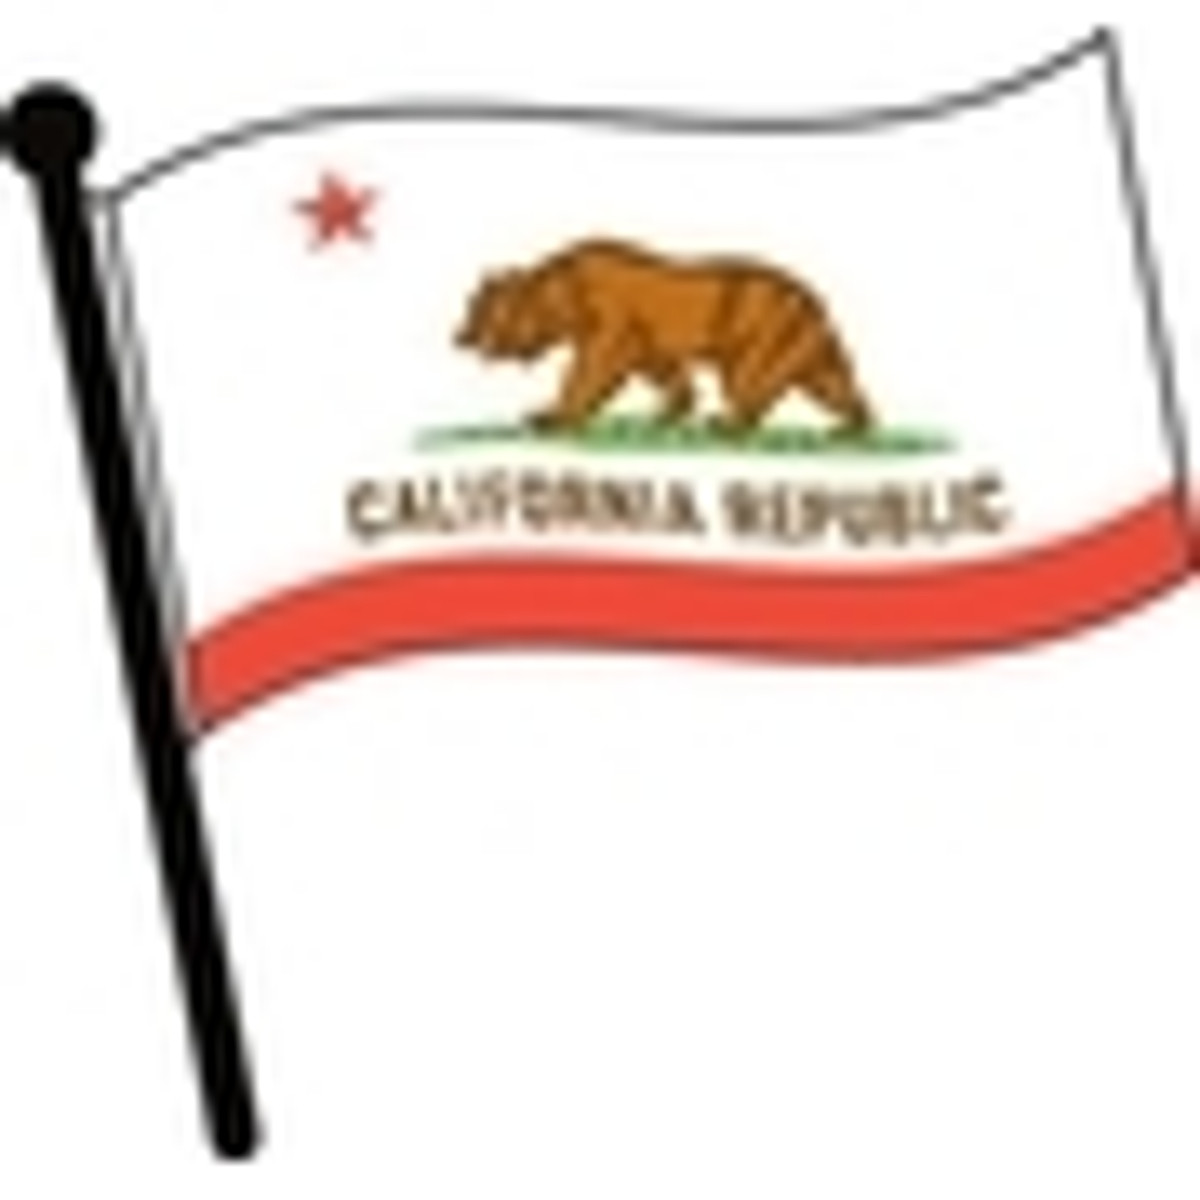 Waving State Flags Clip Art